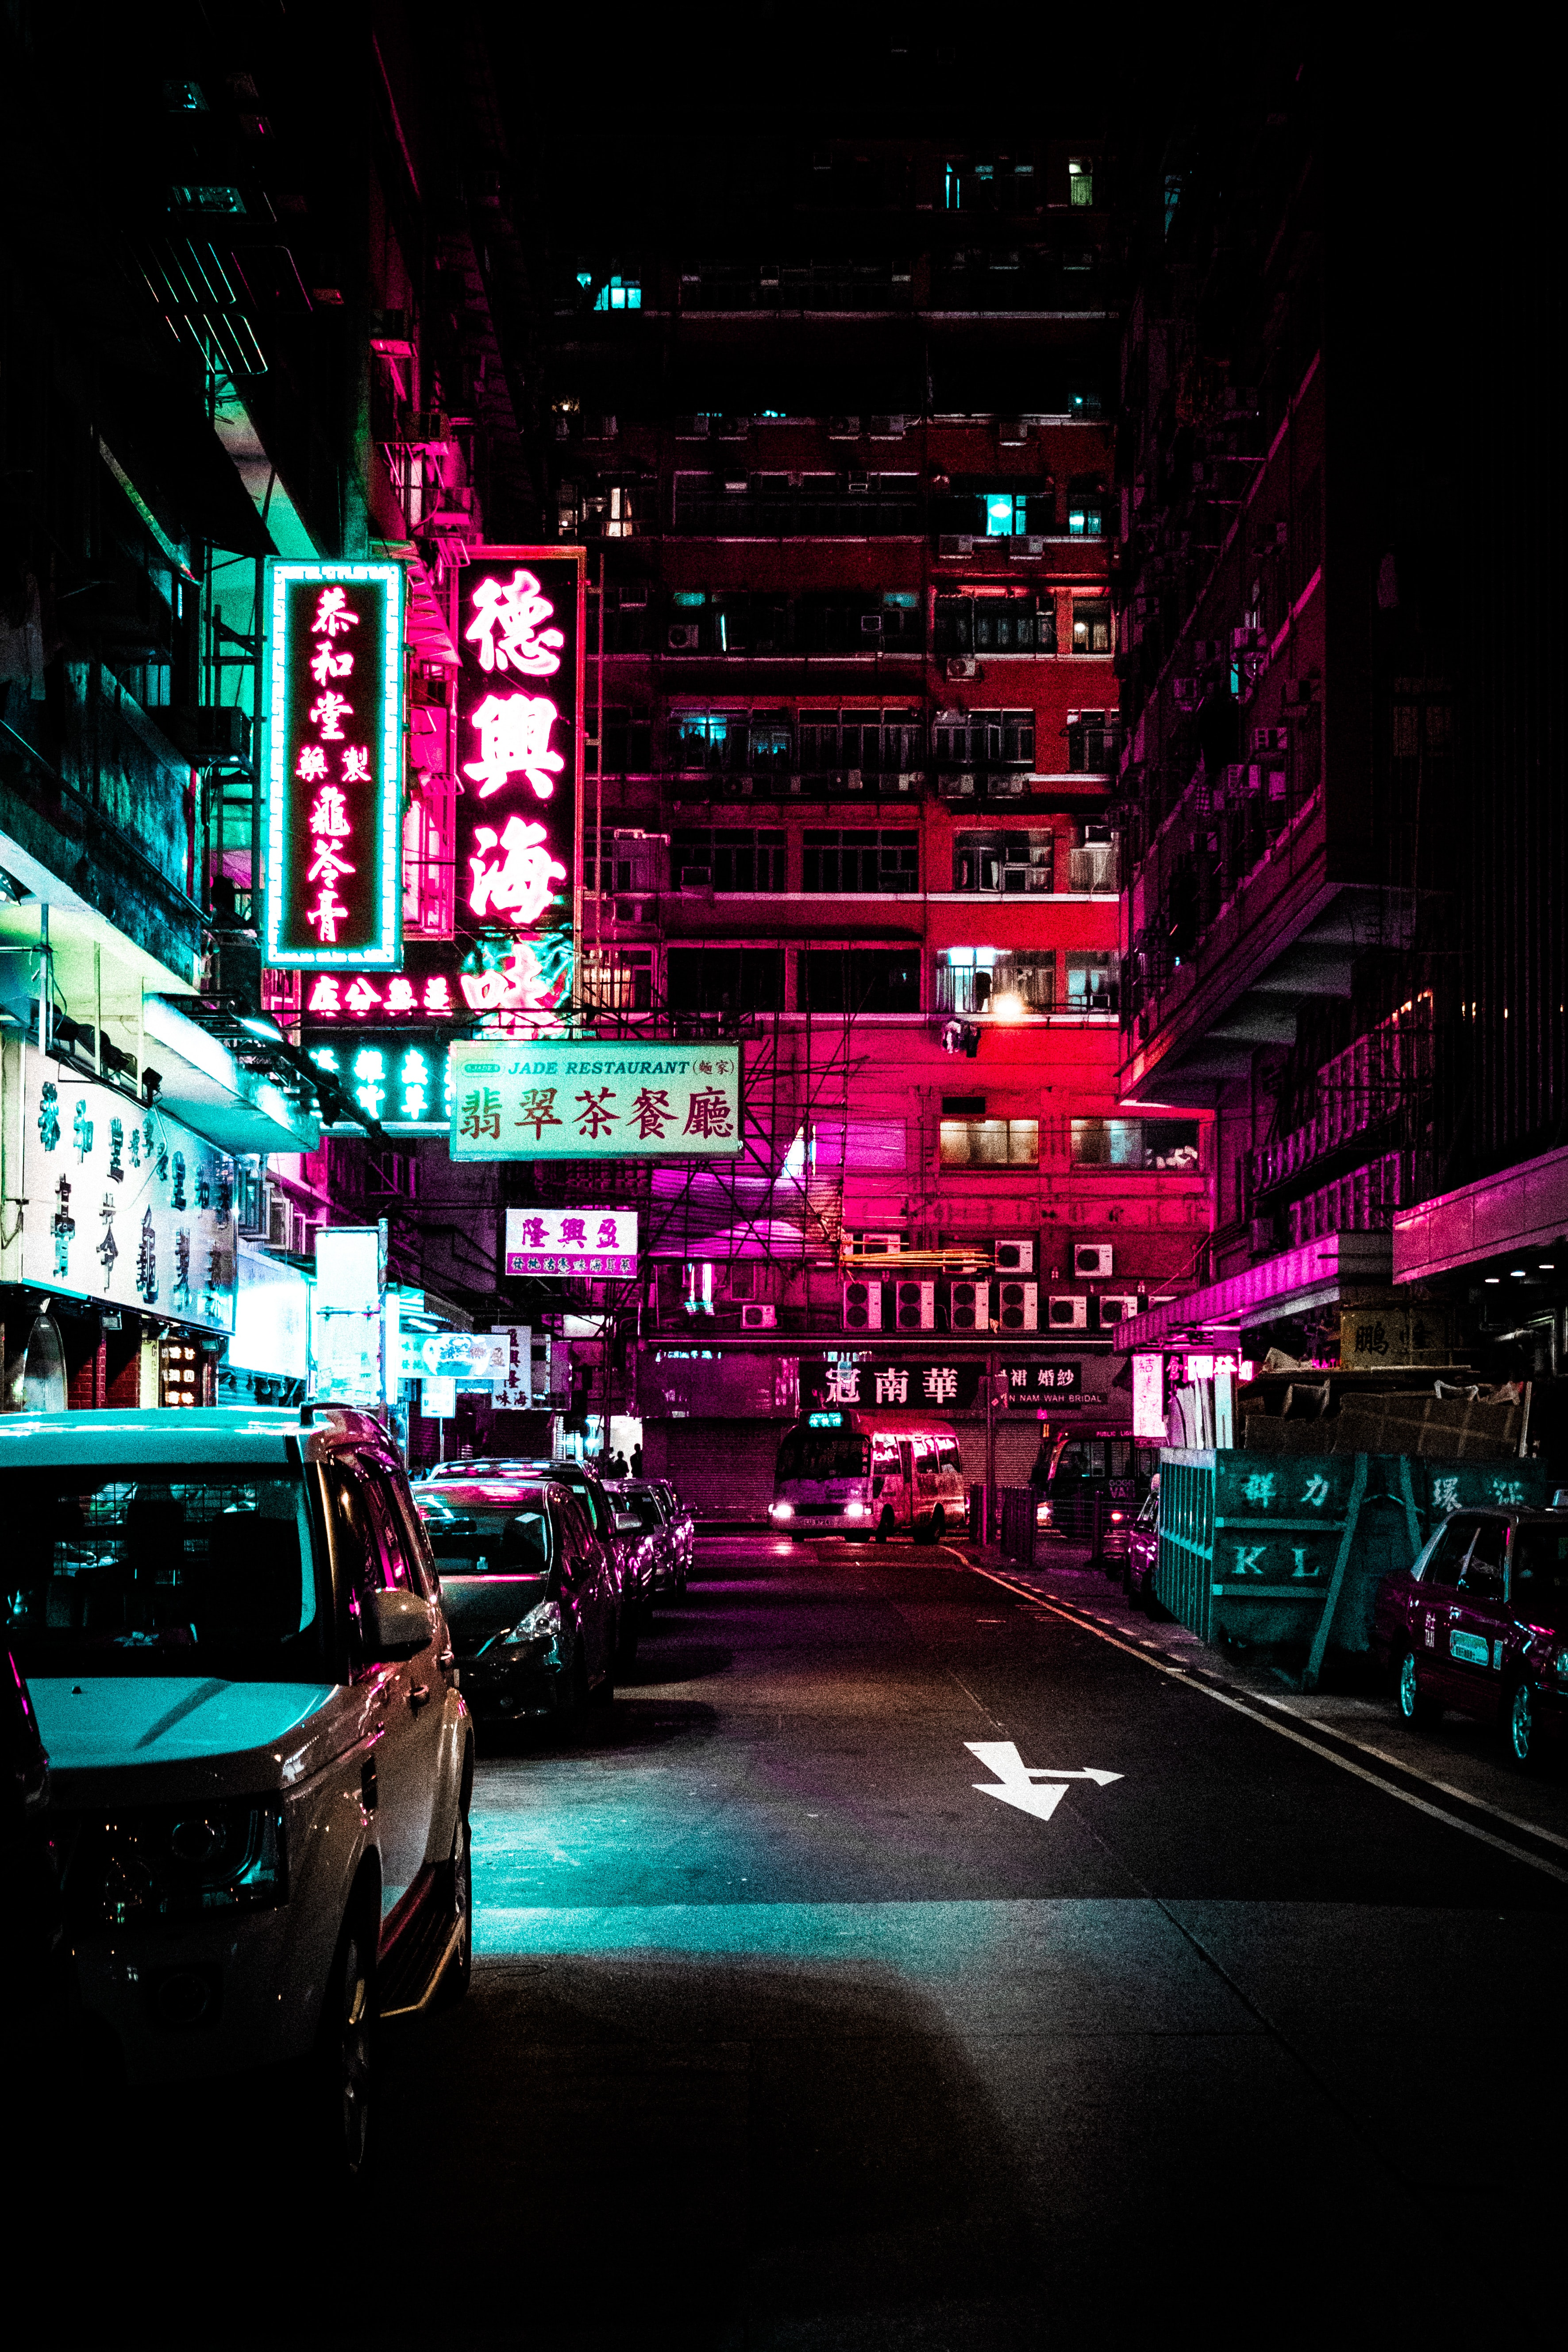 vehicles park on roadway between lighted buildings during nighttime